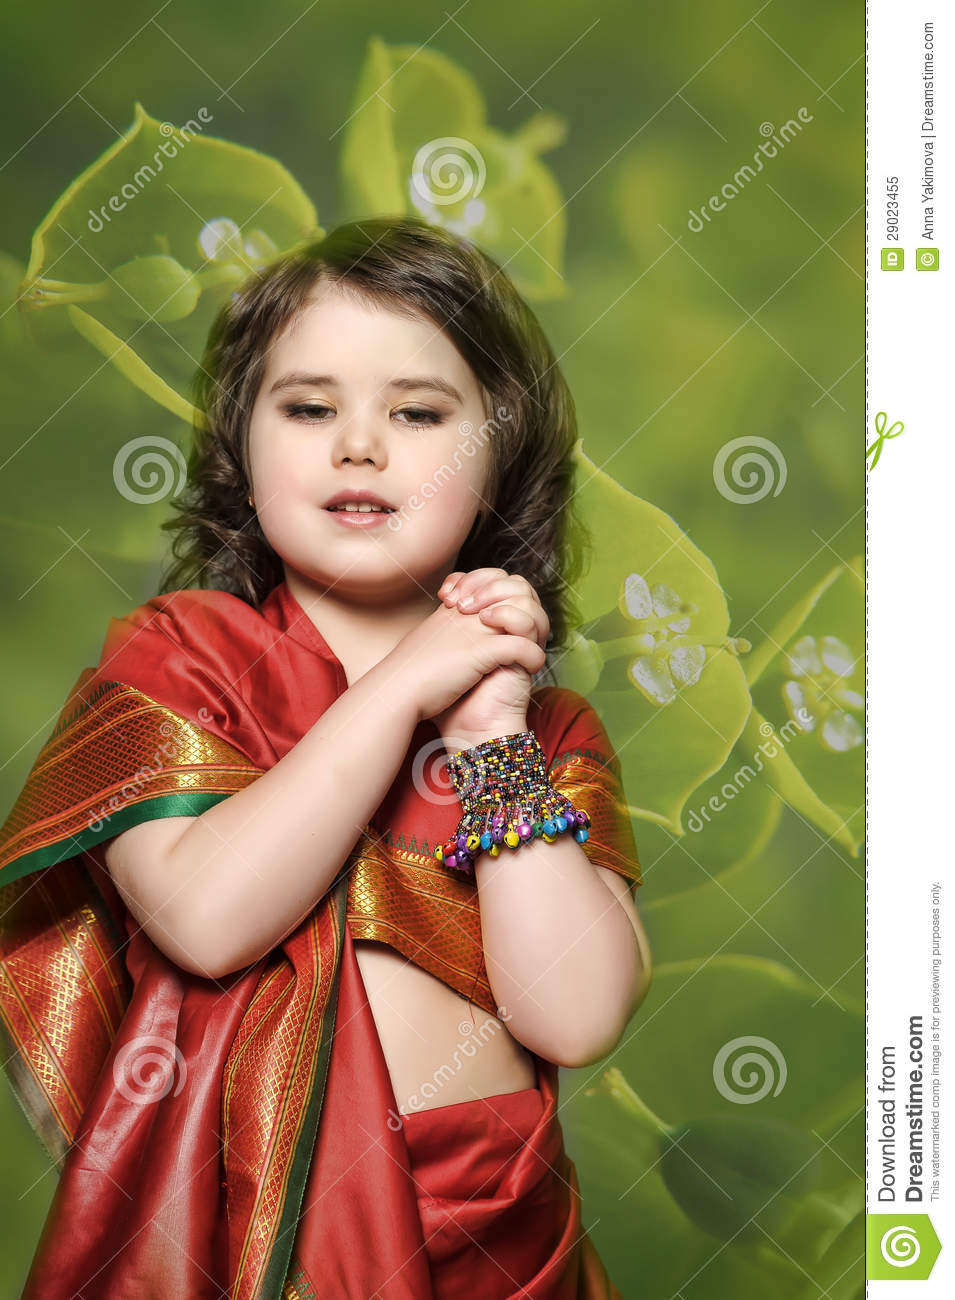 a little girl is in the national indian dress stock image - image of